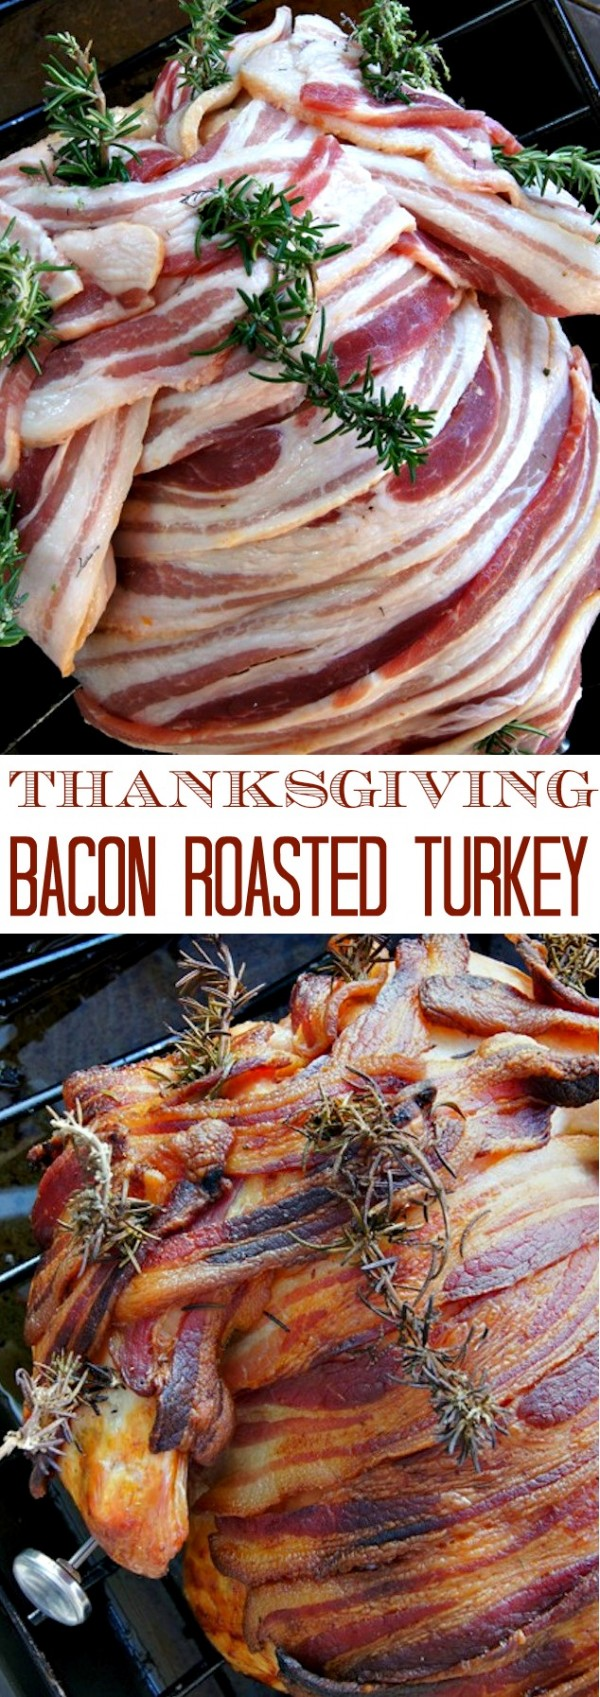 Get the recipe Thanksgiving Bacon Roasted Turkey @recipes_to_go